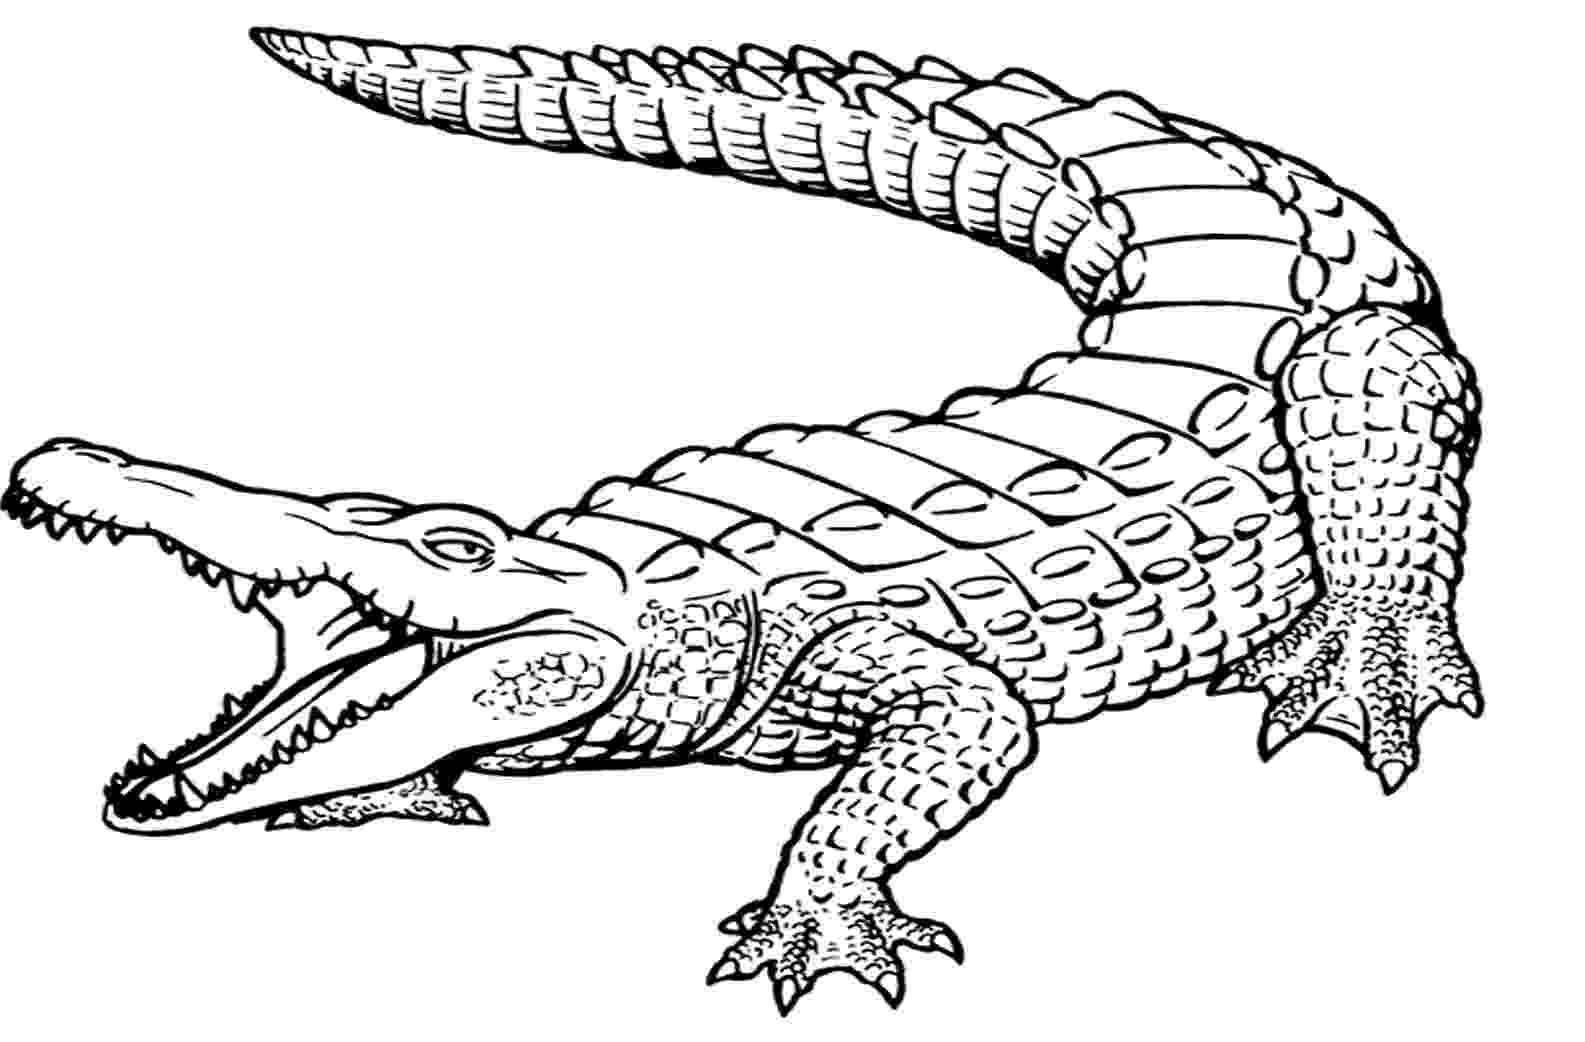 crocodile colouring pictures crocodile drawing for kids at getdrawingscom free for crocodile colouring pictures